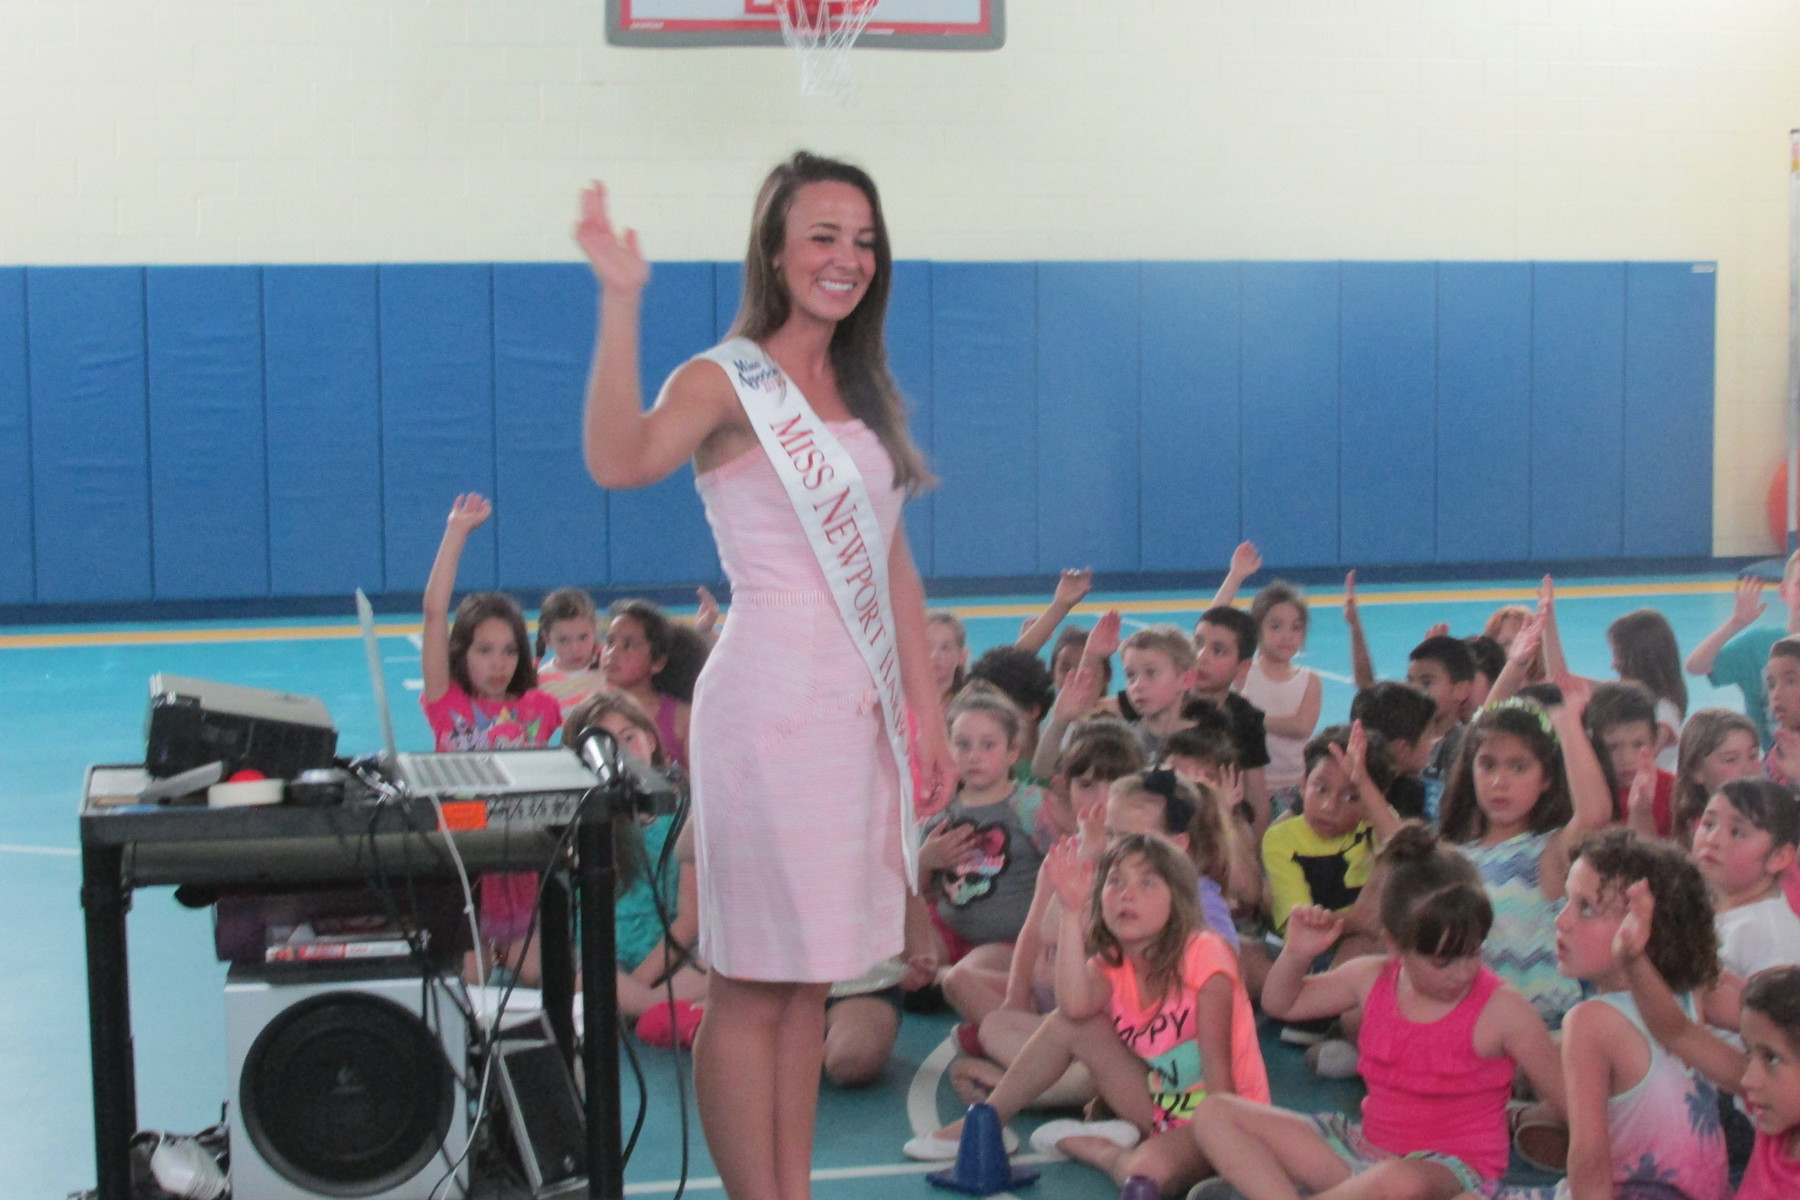 CHOOSE TO BE NICE: Nicolette Peloquin shared a positive message with students at Winsor Hill Elementary School.